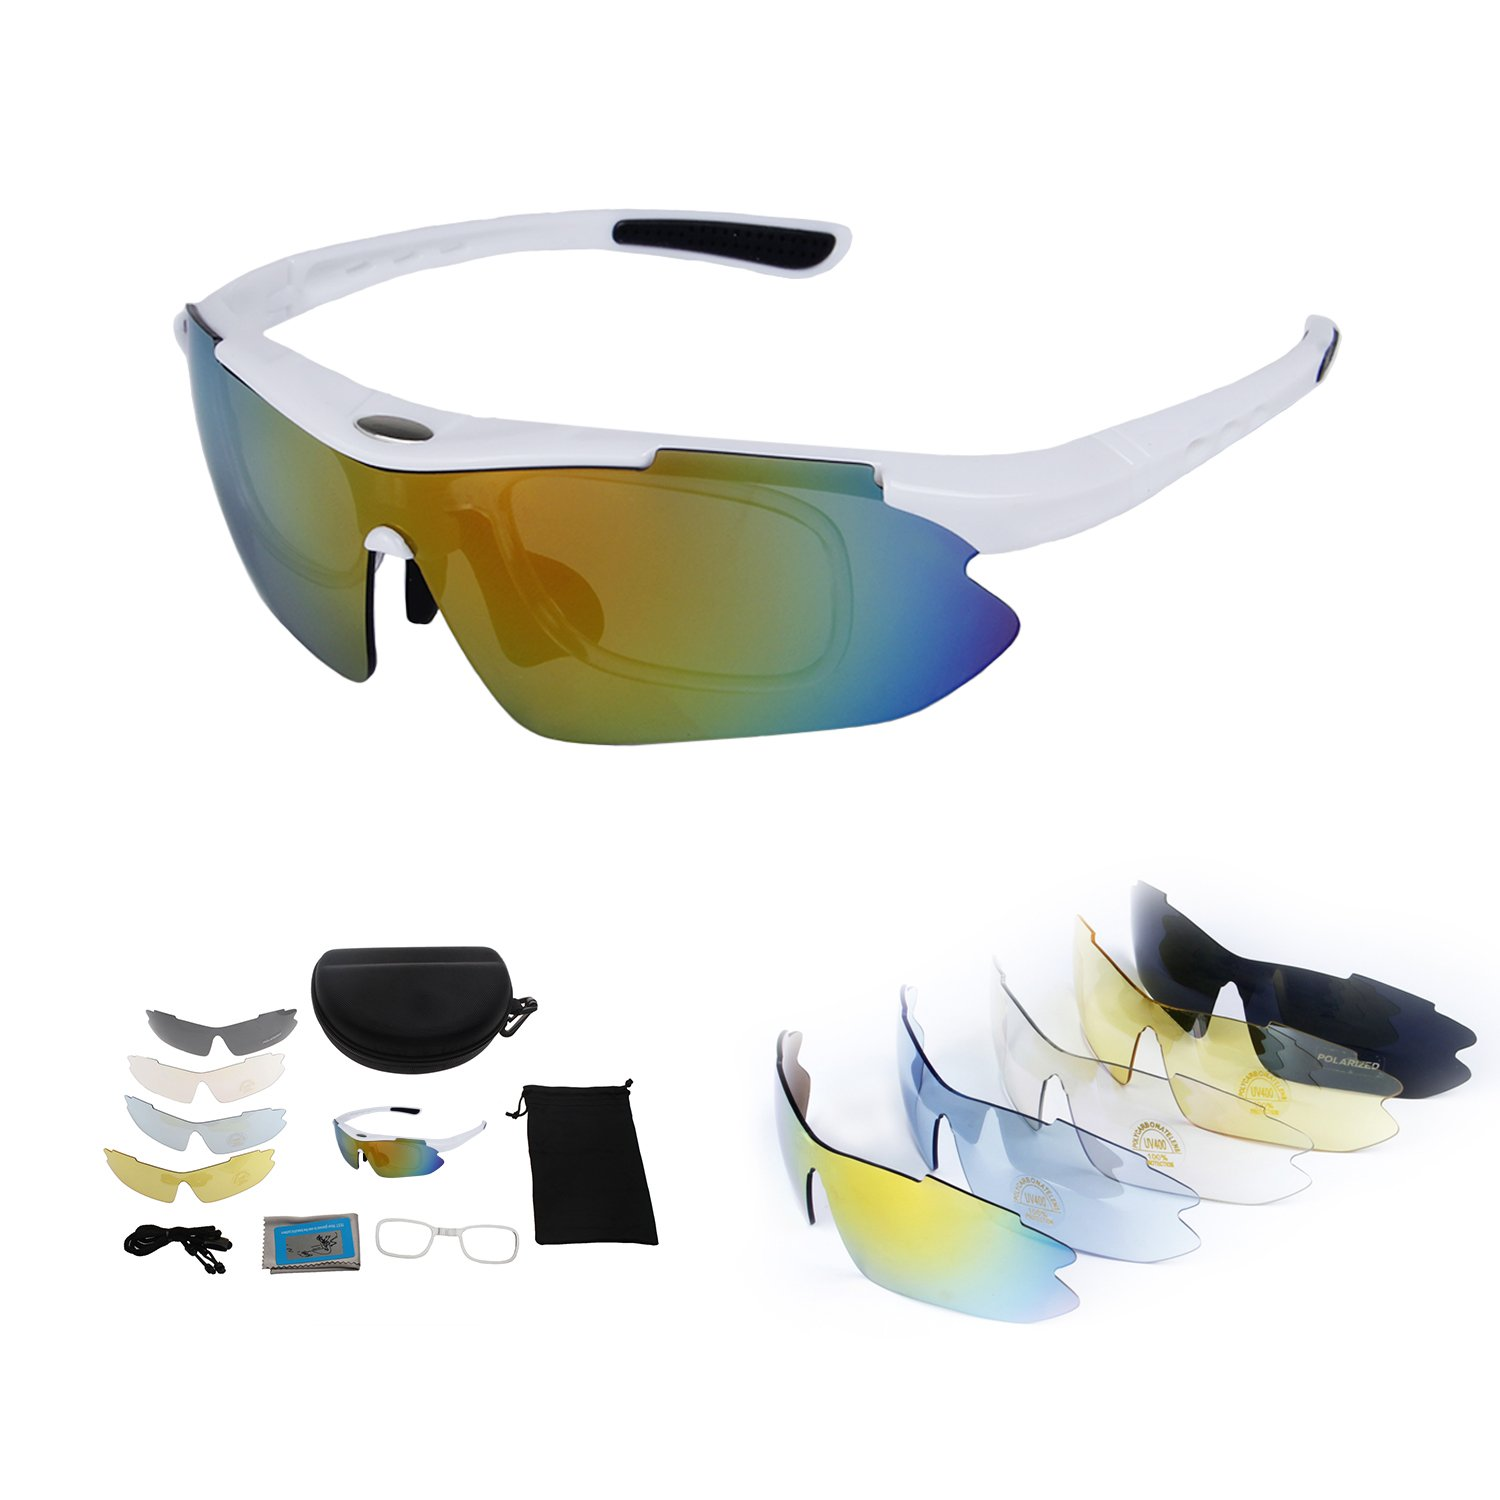 Polarized Sports Sunglasses with Tr90 Unbreakable Frame 5 Interchangeable Lenses by abaolux